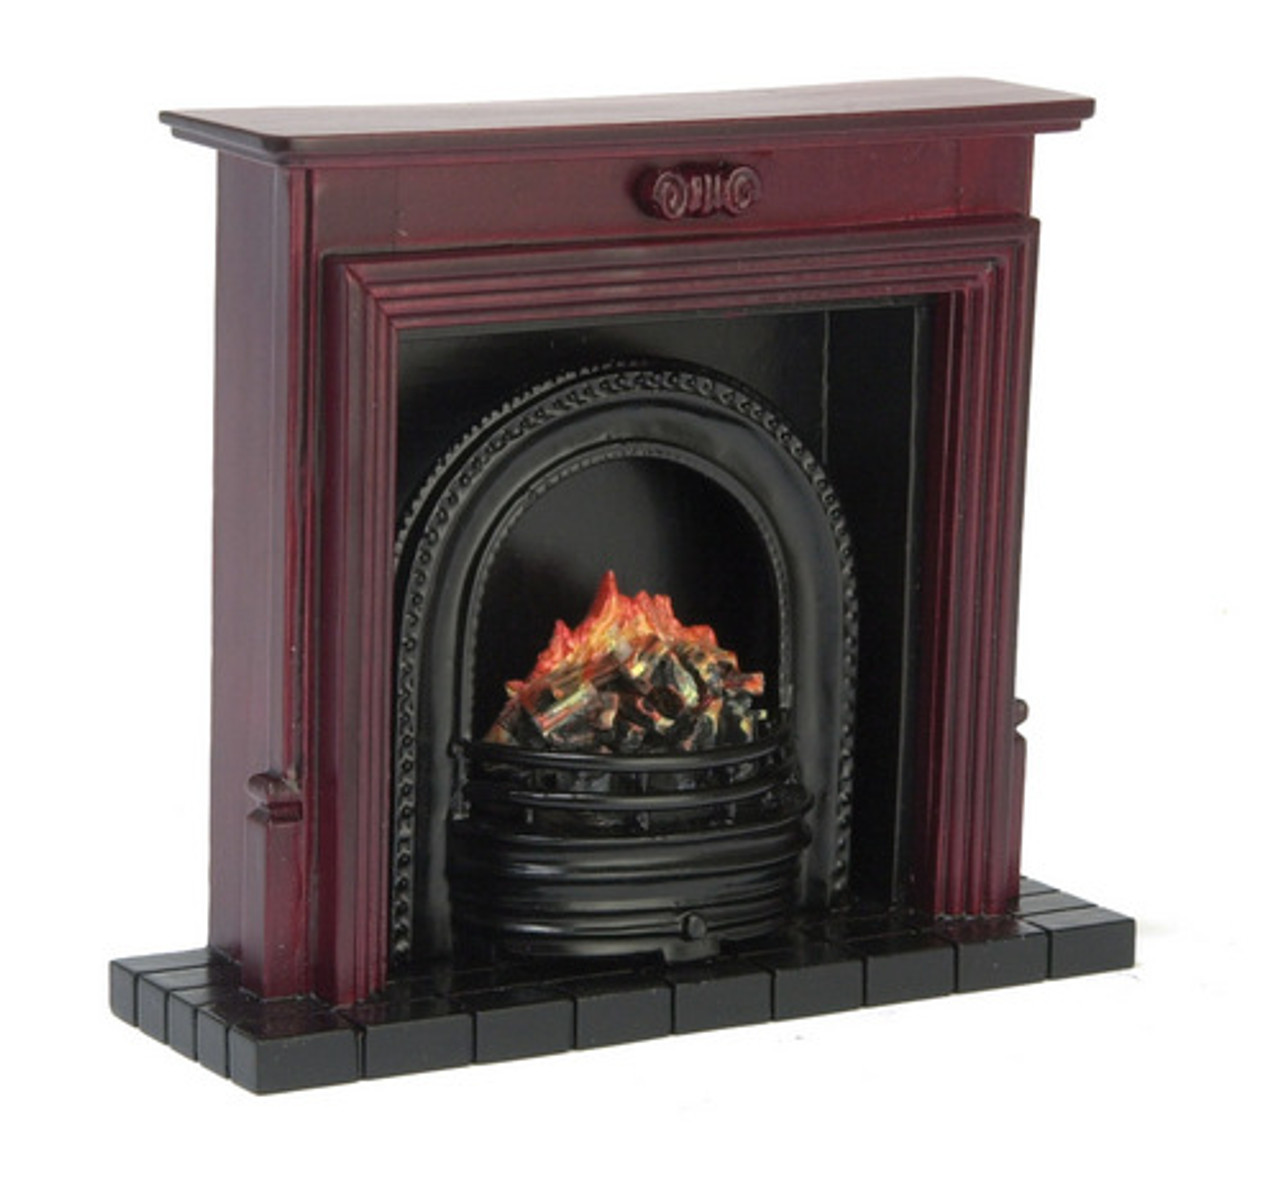 Fireplace with Insert - Mahogany